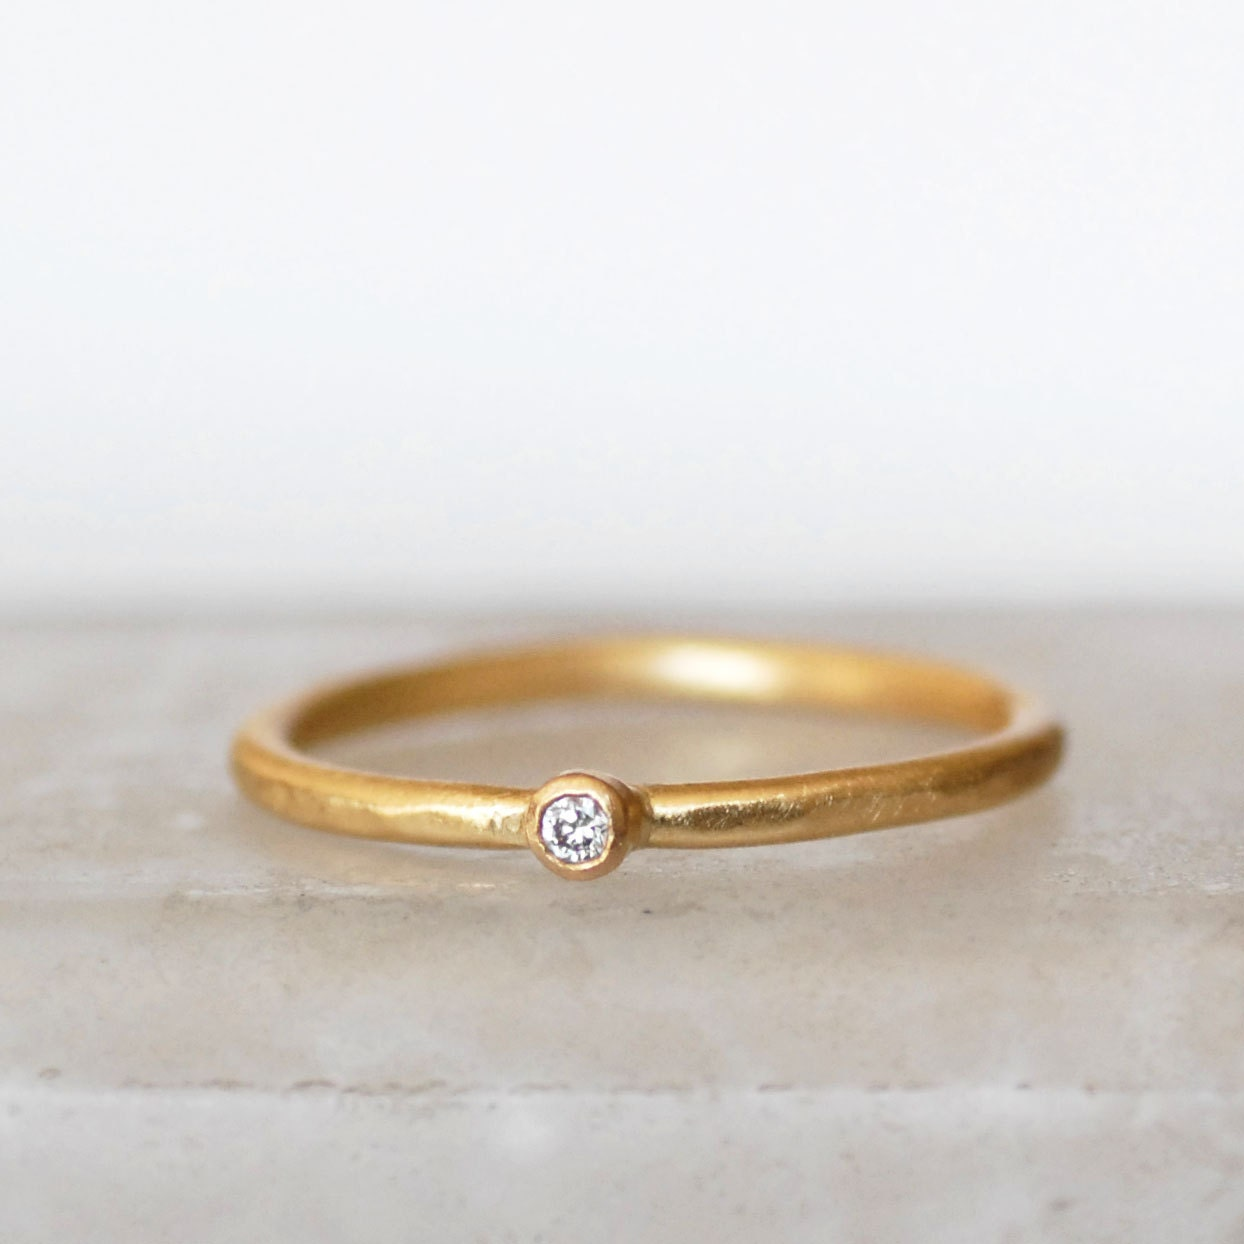 Tiny Diamond Ring 2mm Diamond Ring Small Diamond Gold